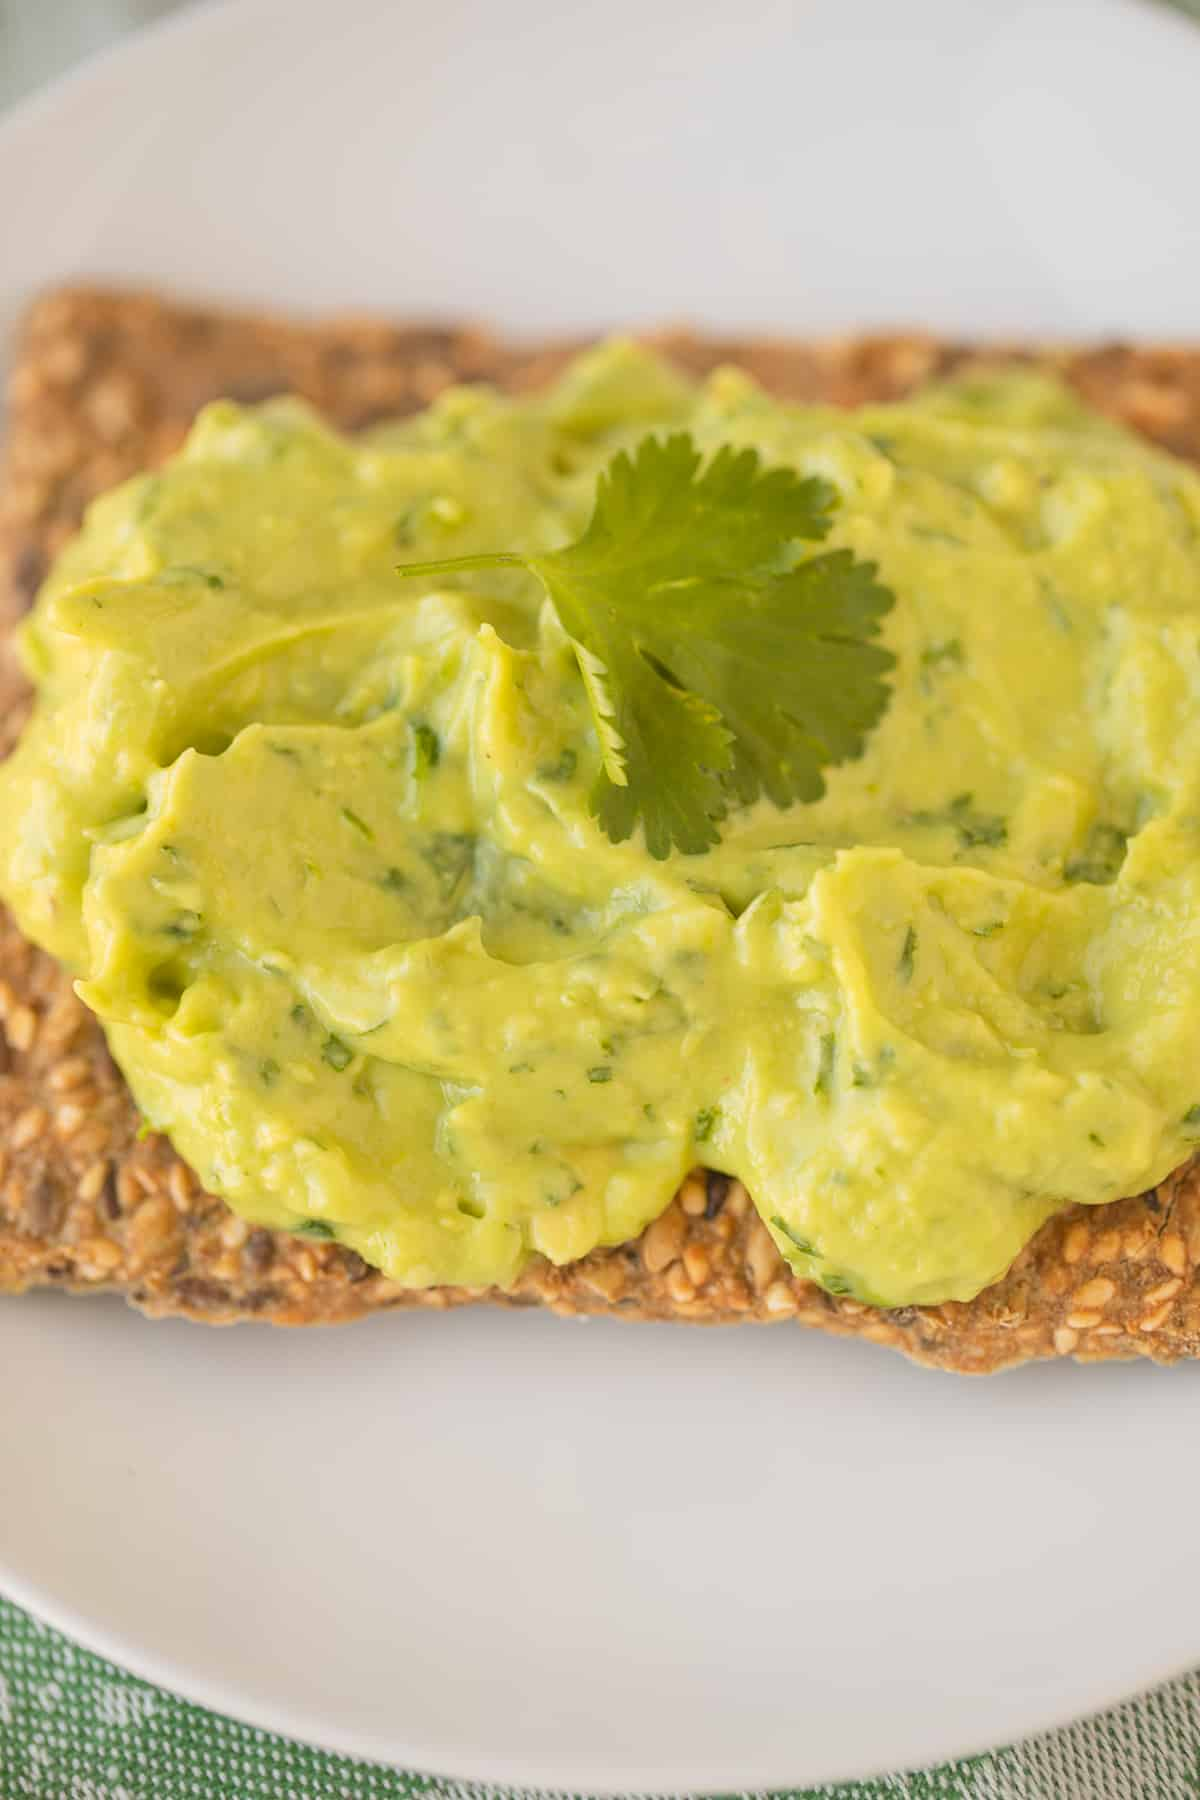 avocado spread on a cracker